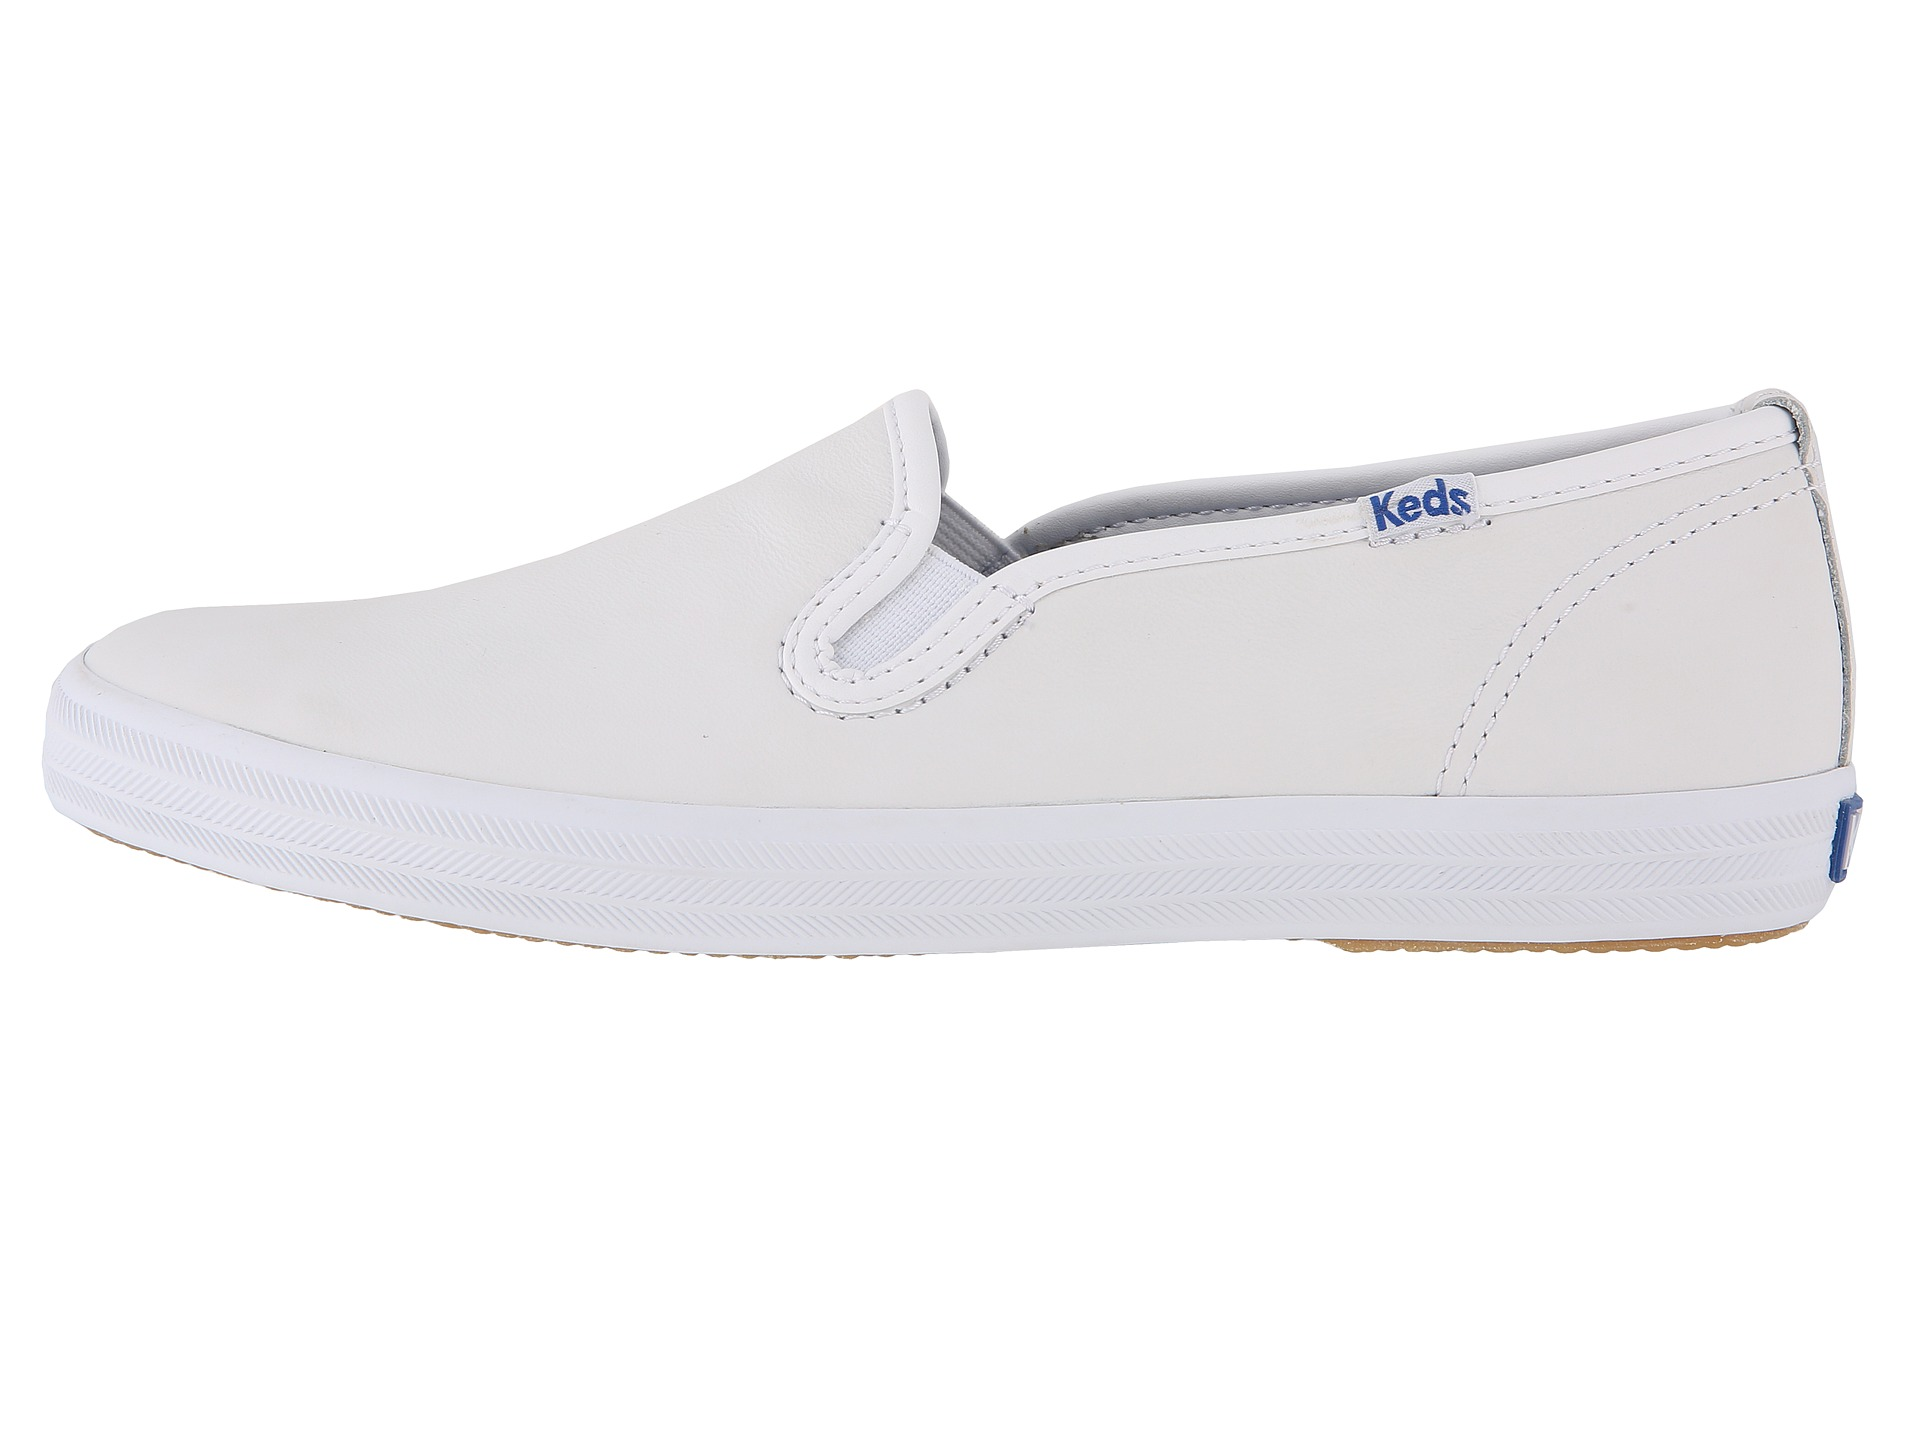 keds white leather slip on